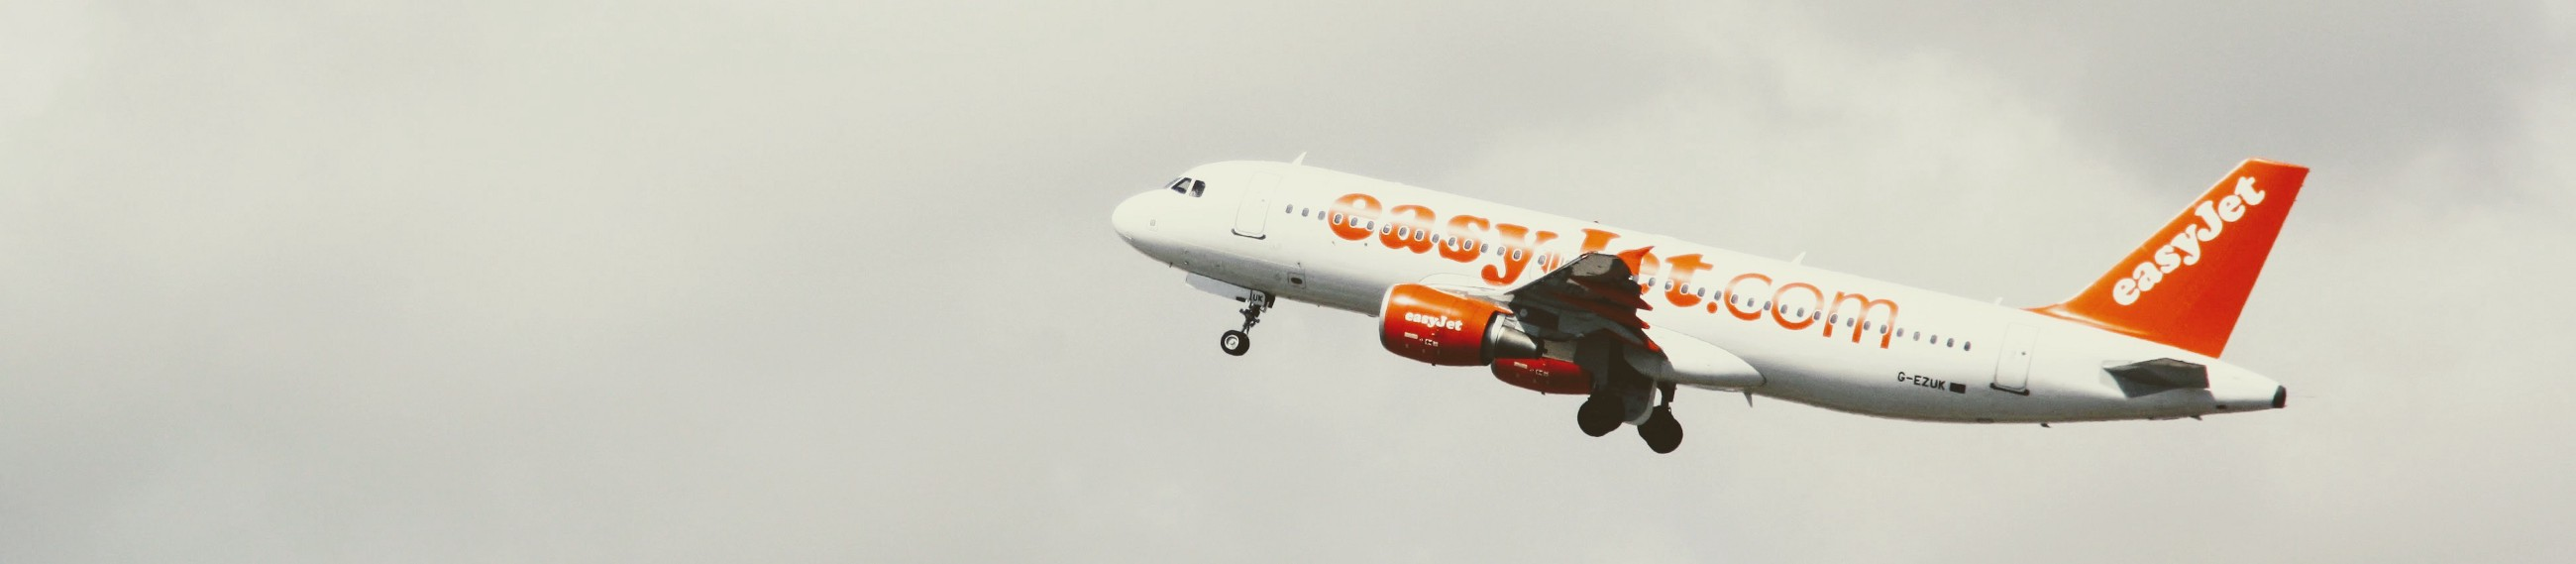 Cheap One Way Flights Easyjet One Way Vs Return Flights Airhint Blog Save Money On